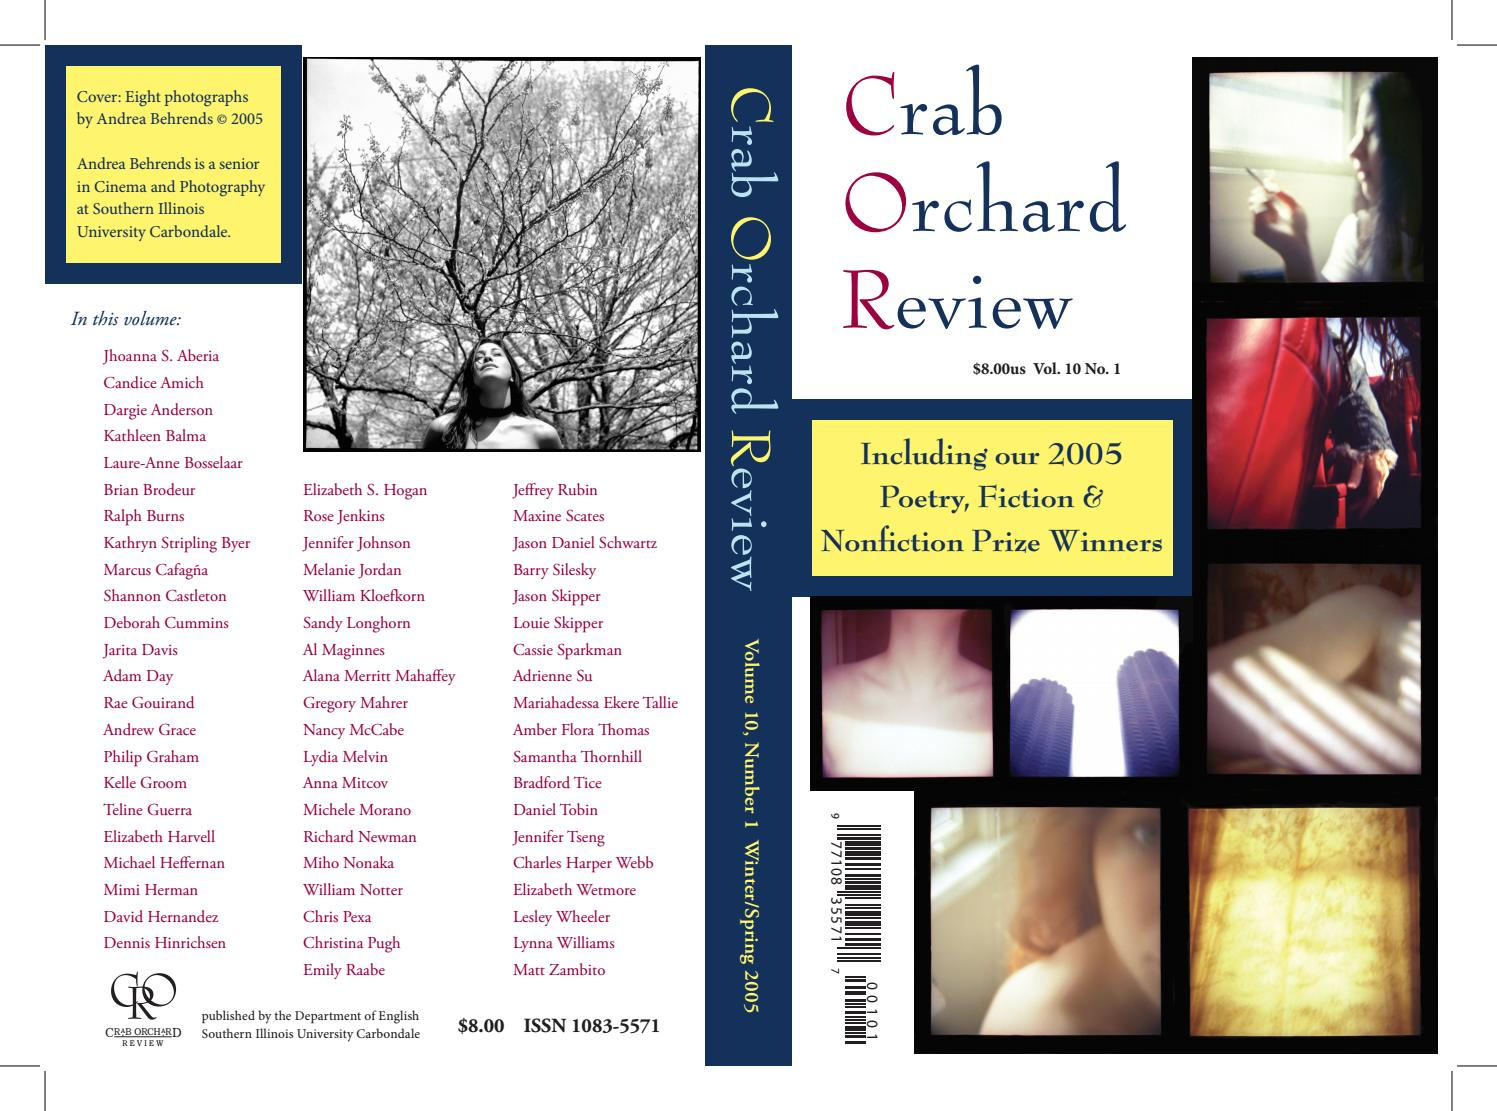 Crab Orchard Review Vol 10 No 1 W S 2005 By Crab Orchard Review Issuu